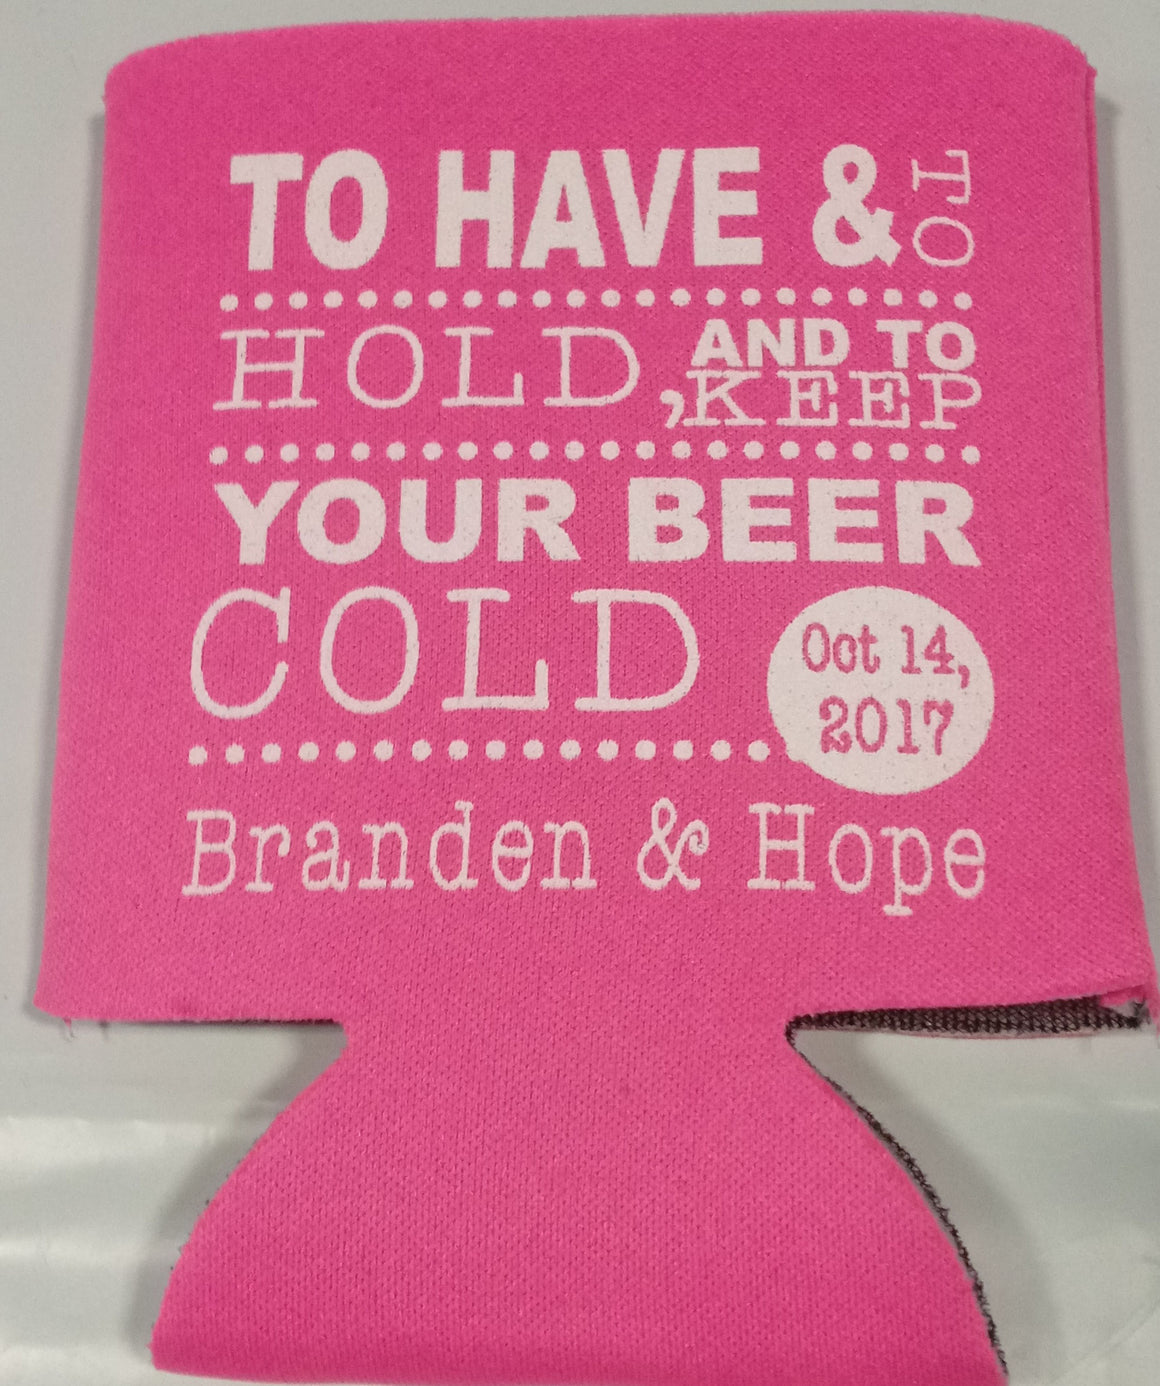 To have and to hold and keep your Beer cold Wedding koozie